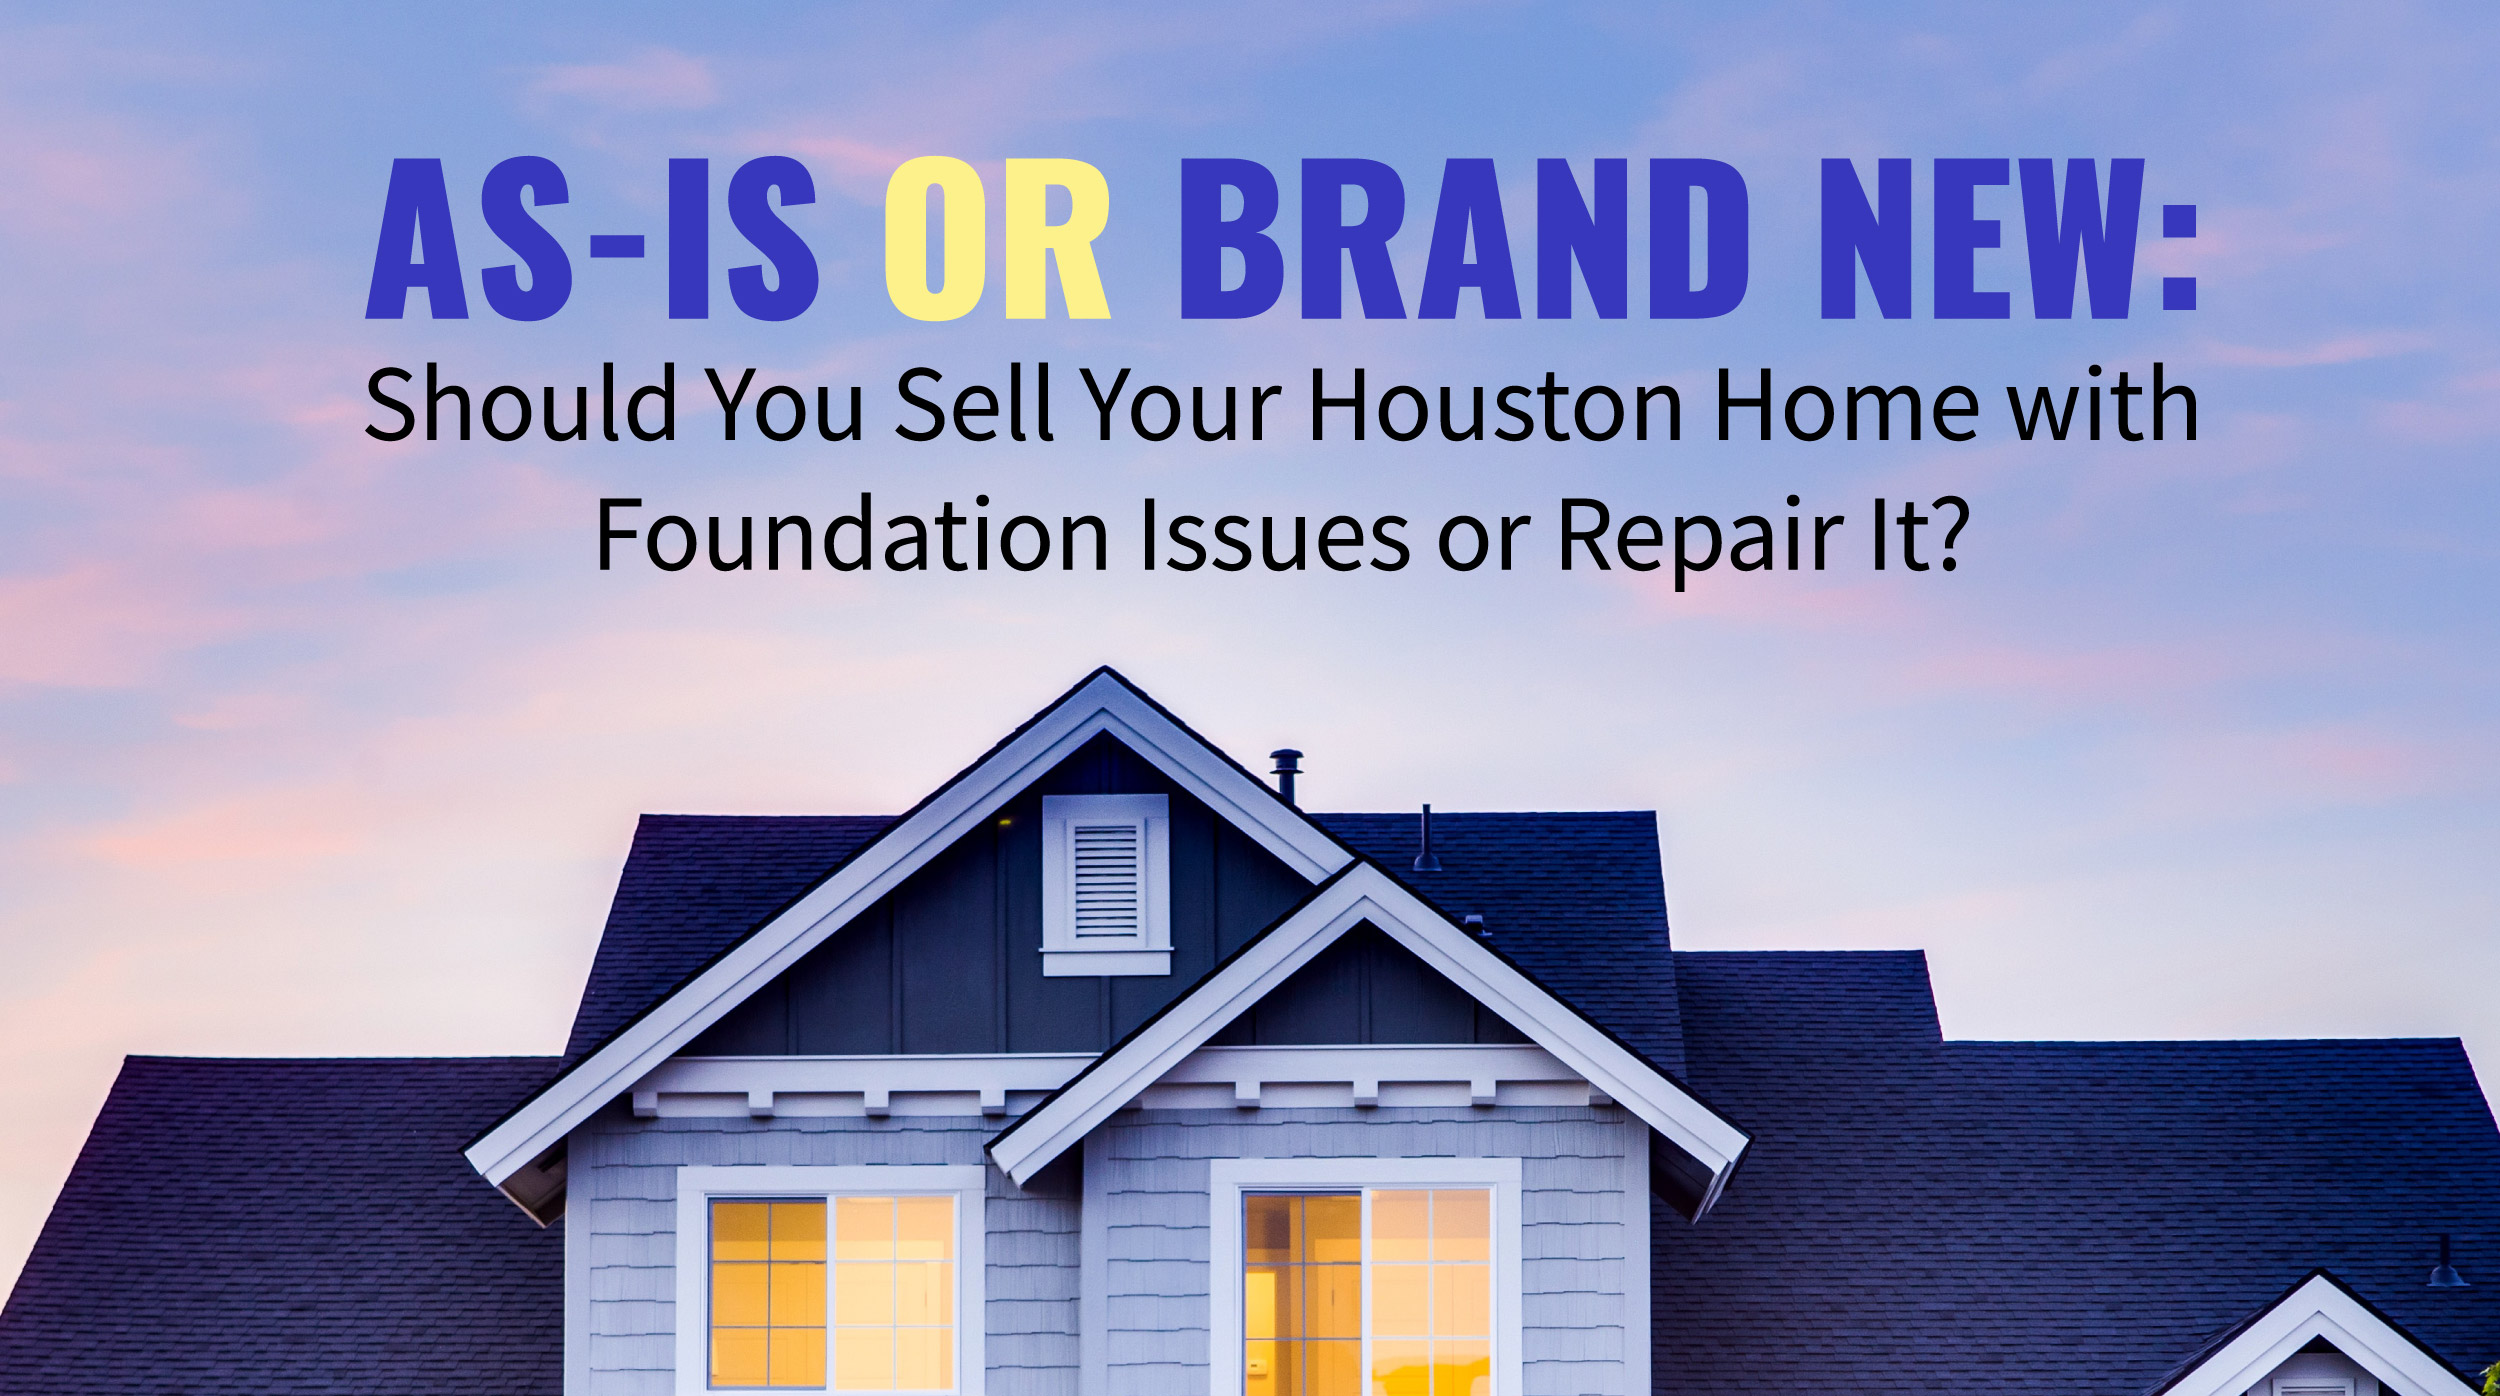 As is or Brand New? Should You Sell Your Home With Foundation Issues or Repair it First?